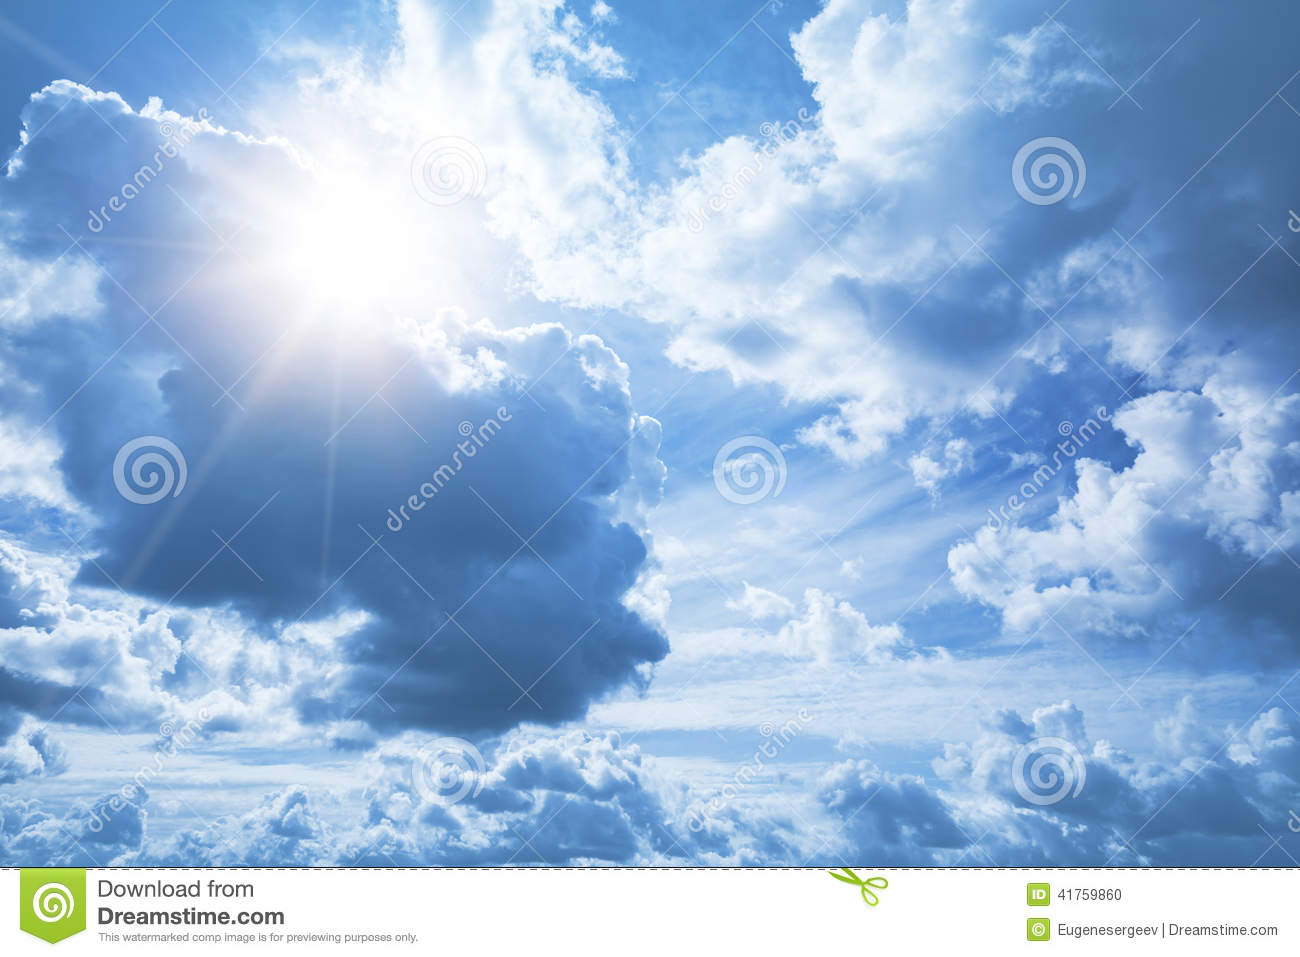 Bright blue sky background with white clouds and sun